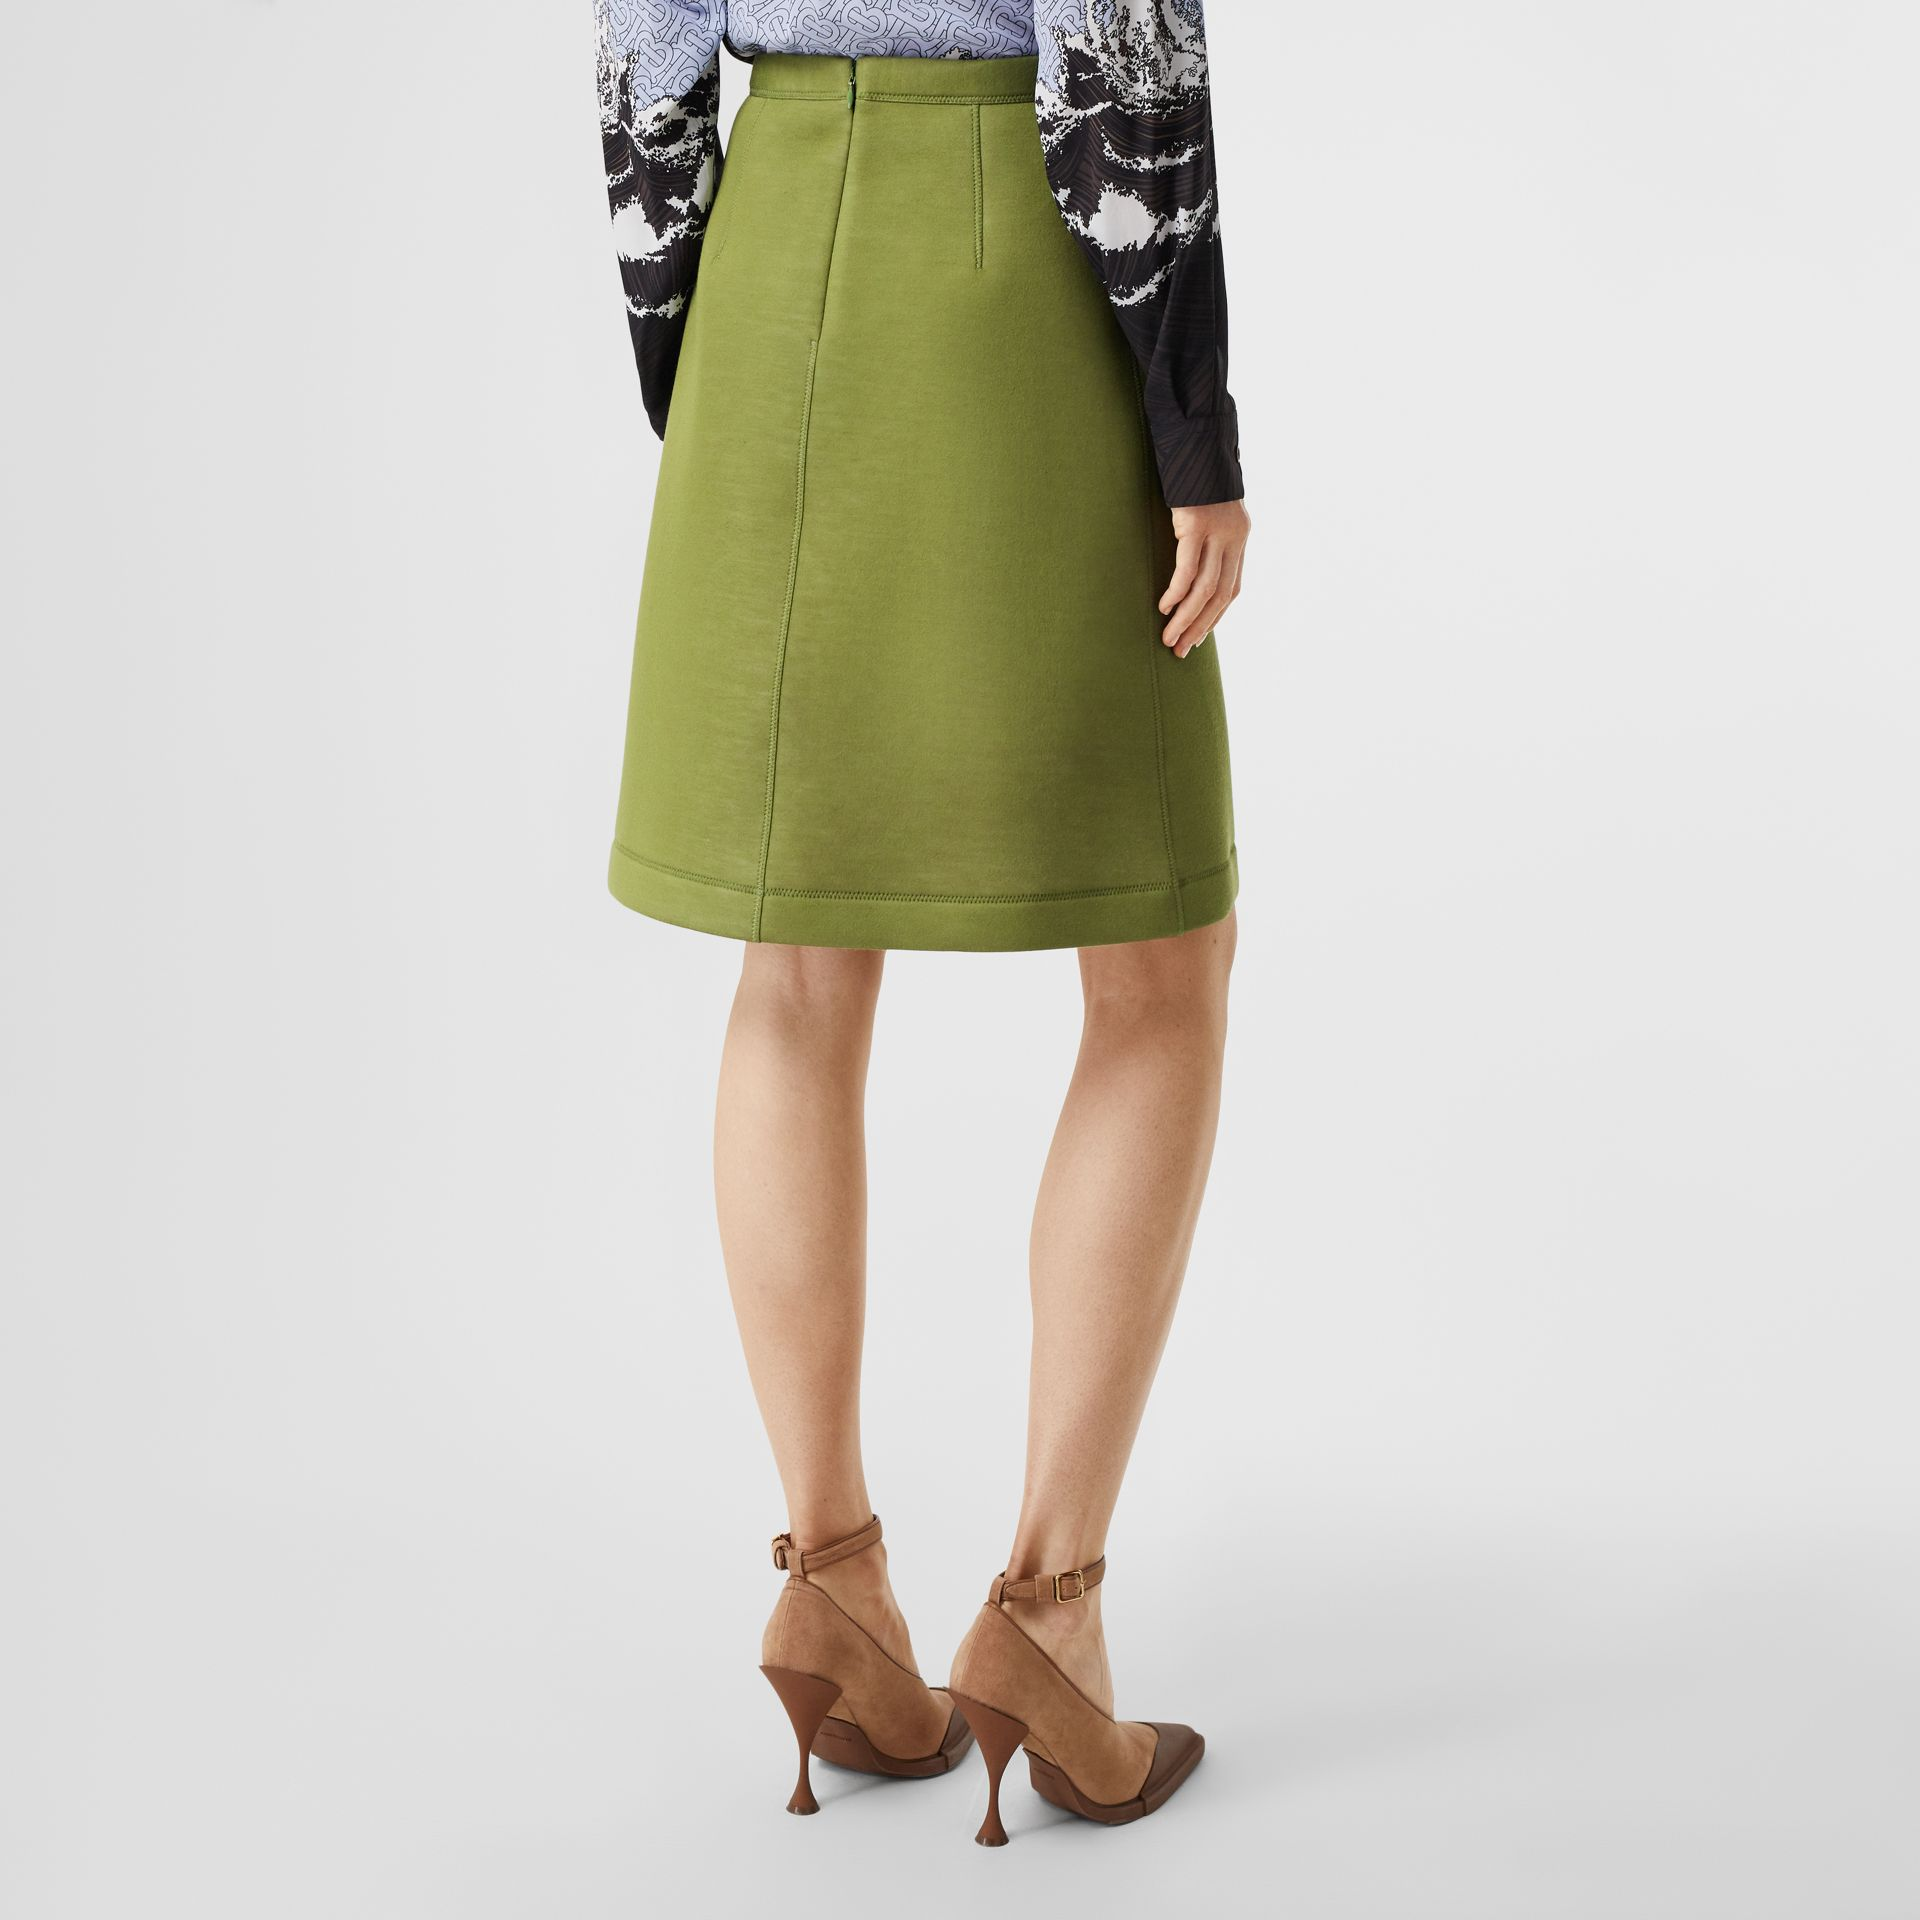 Double-faced Neoprene Skirt in Cedar Green - Women | Burberry United Kingdom - gallery image 2